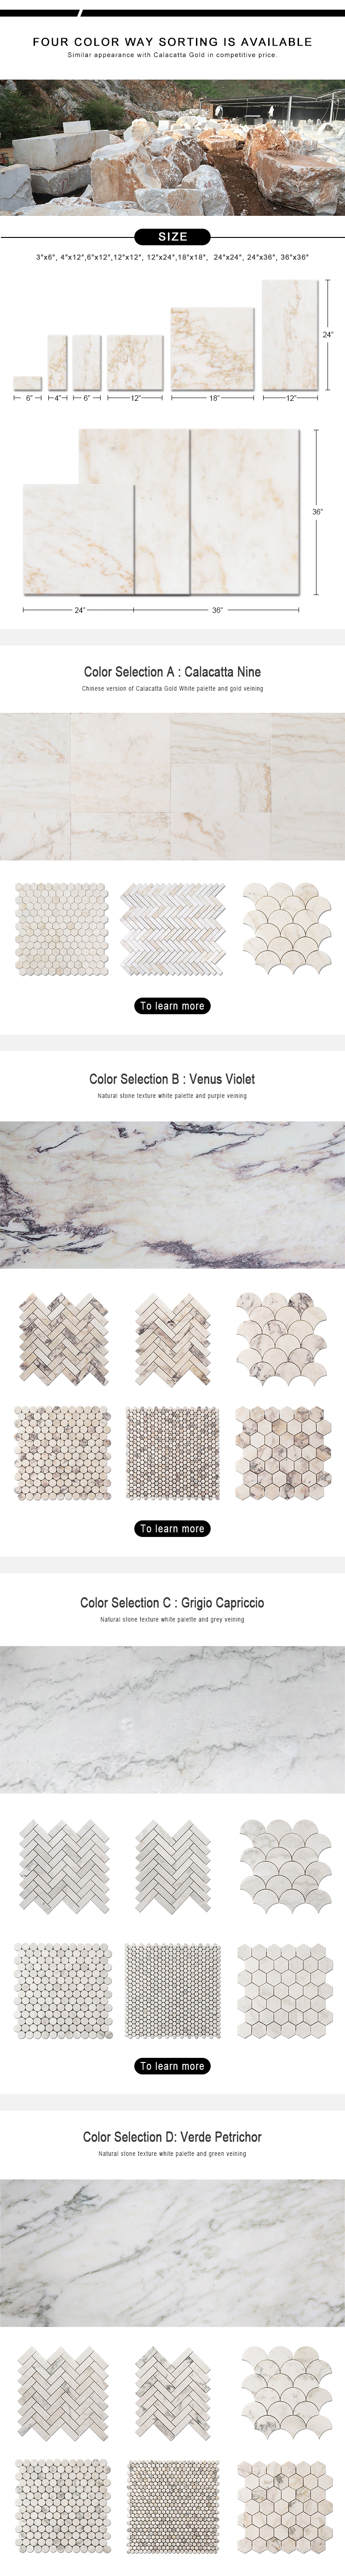 Calacatta Nine White Marble Mosaic Tile Wall Design Mosaic Tile